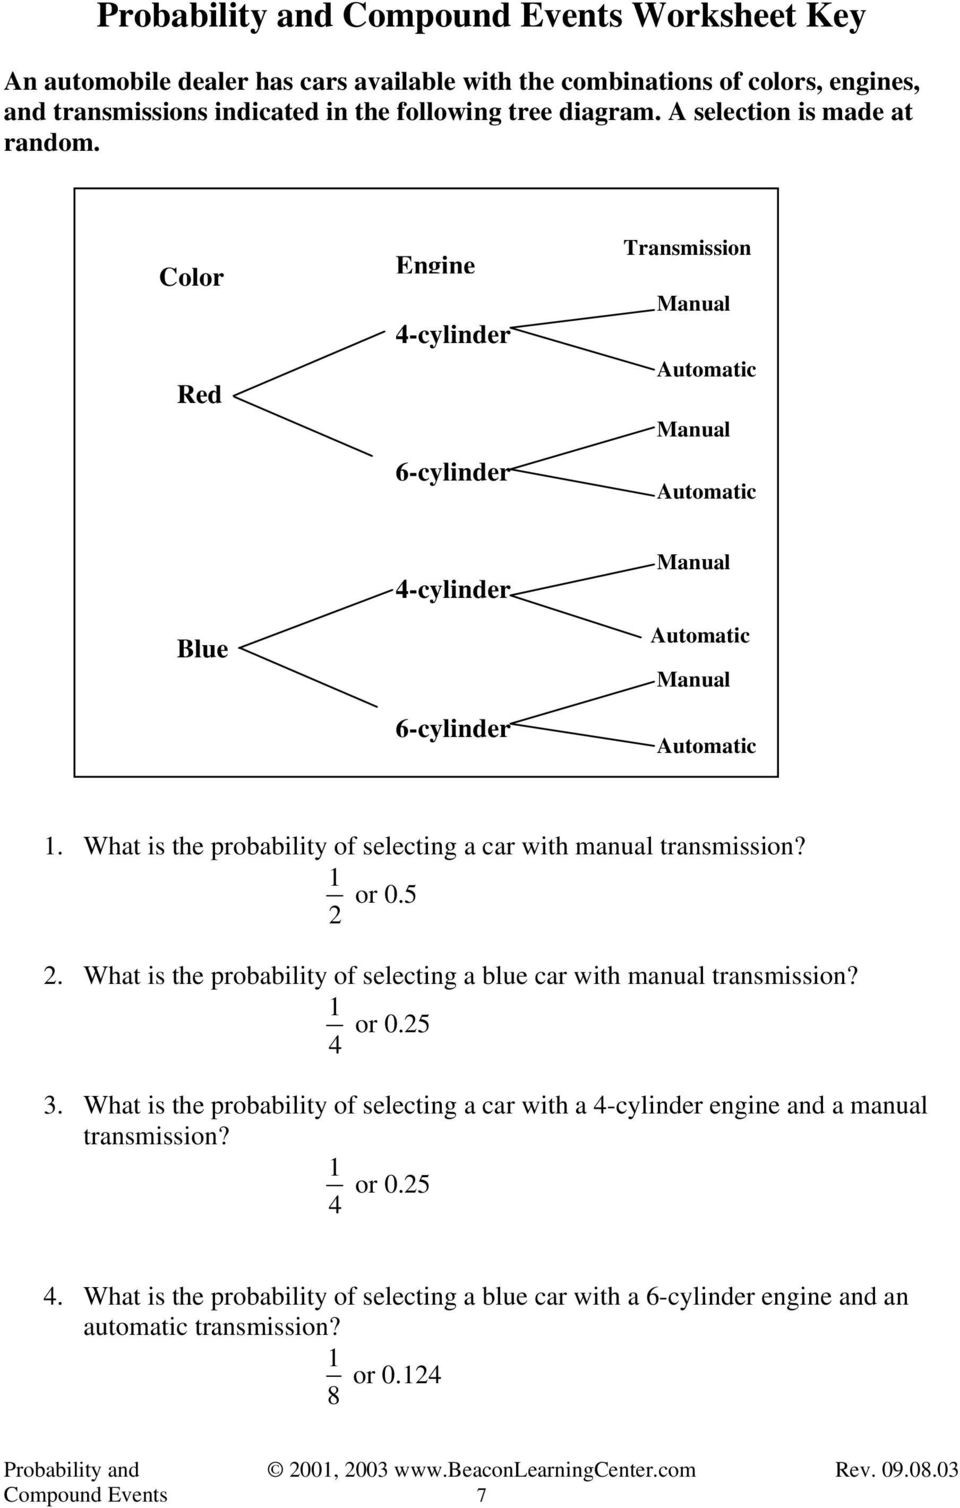 Simple Probability Worksheet Pdf Probability and Pound events Examples Pdf Free Download